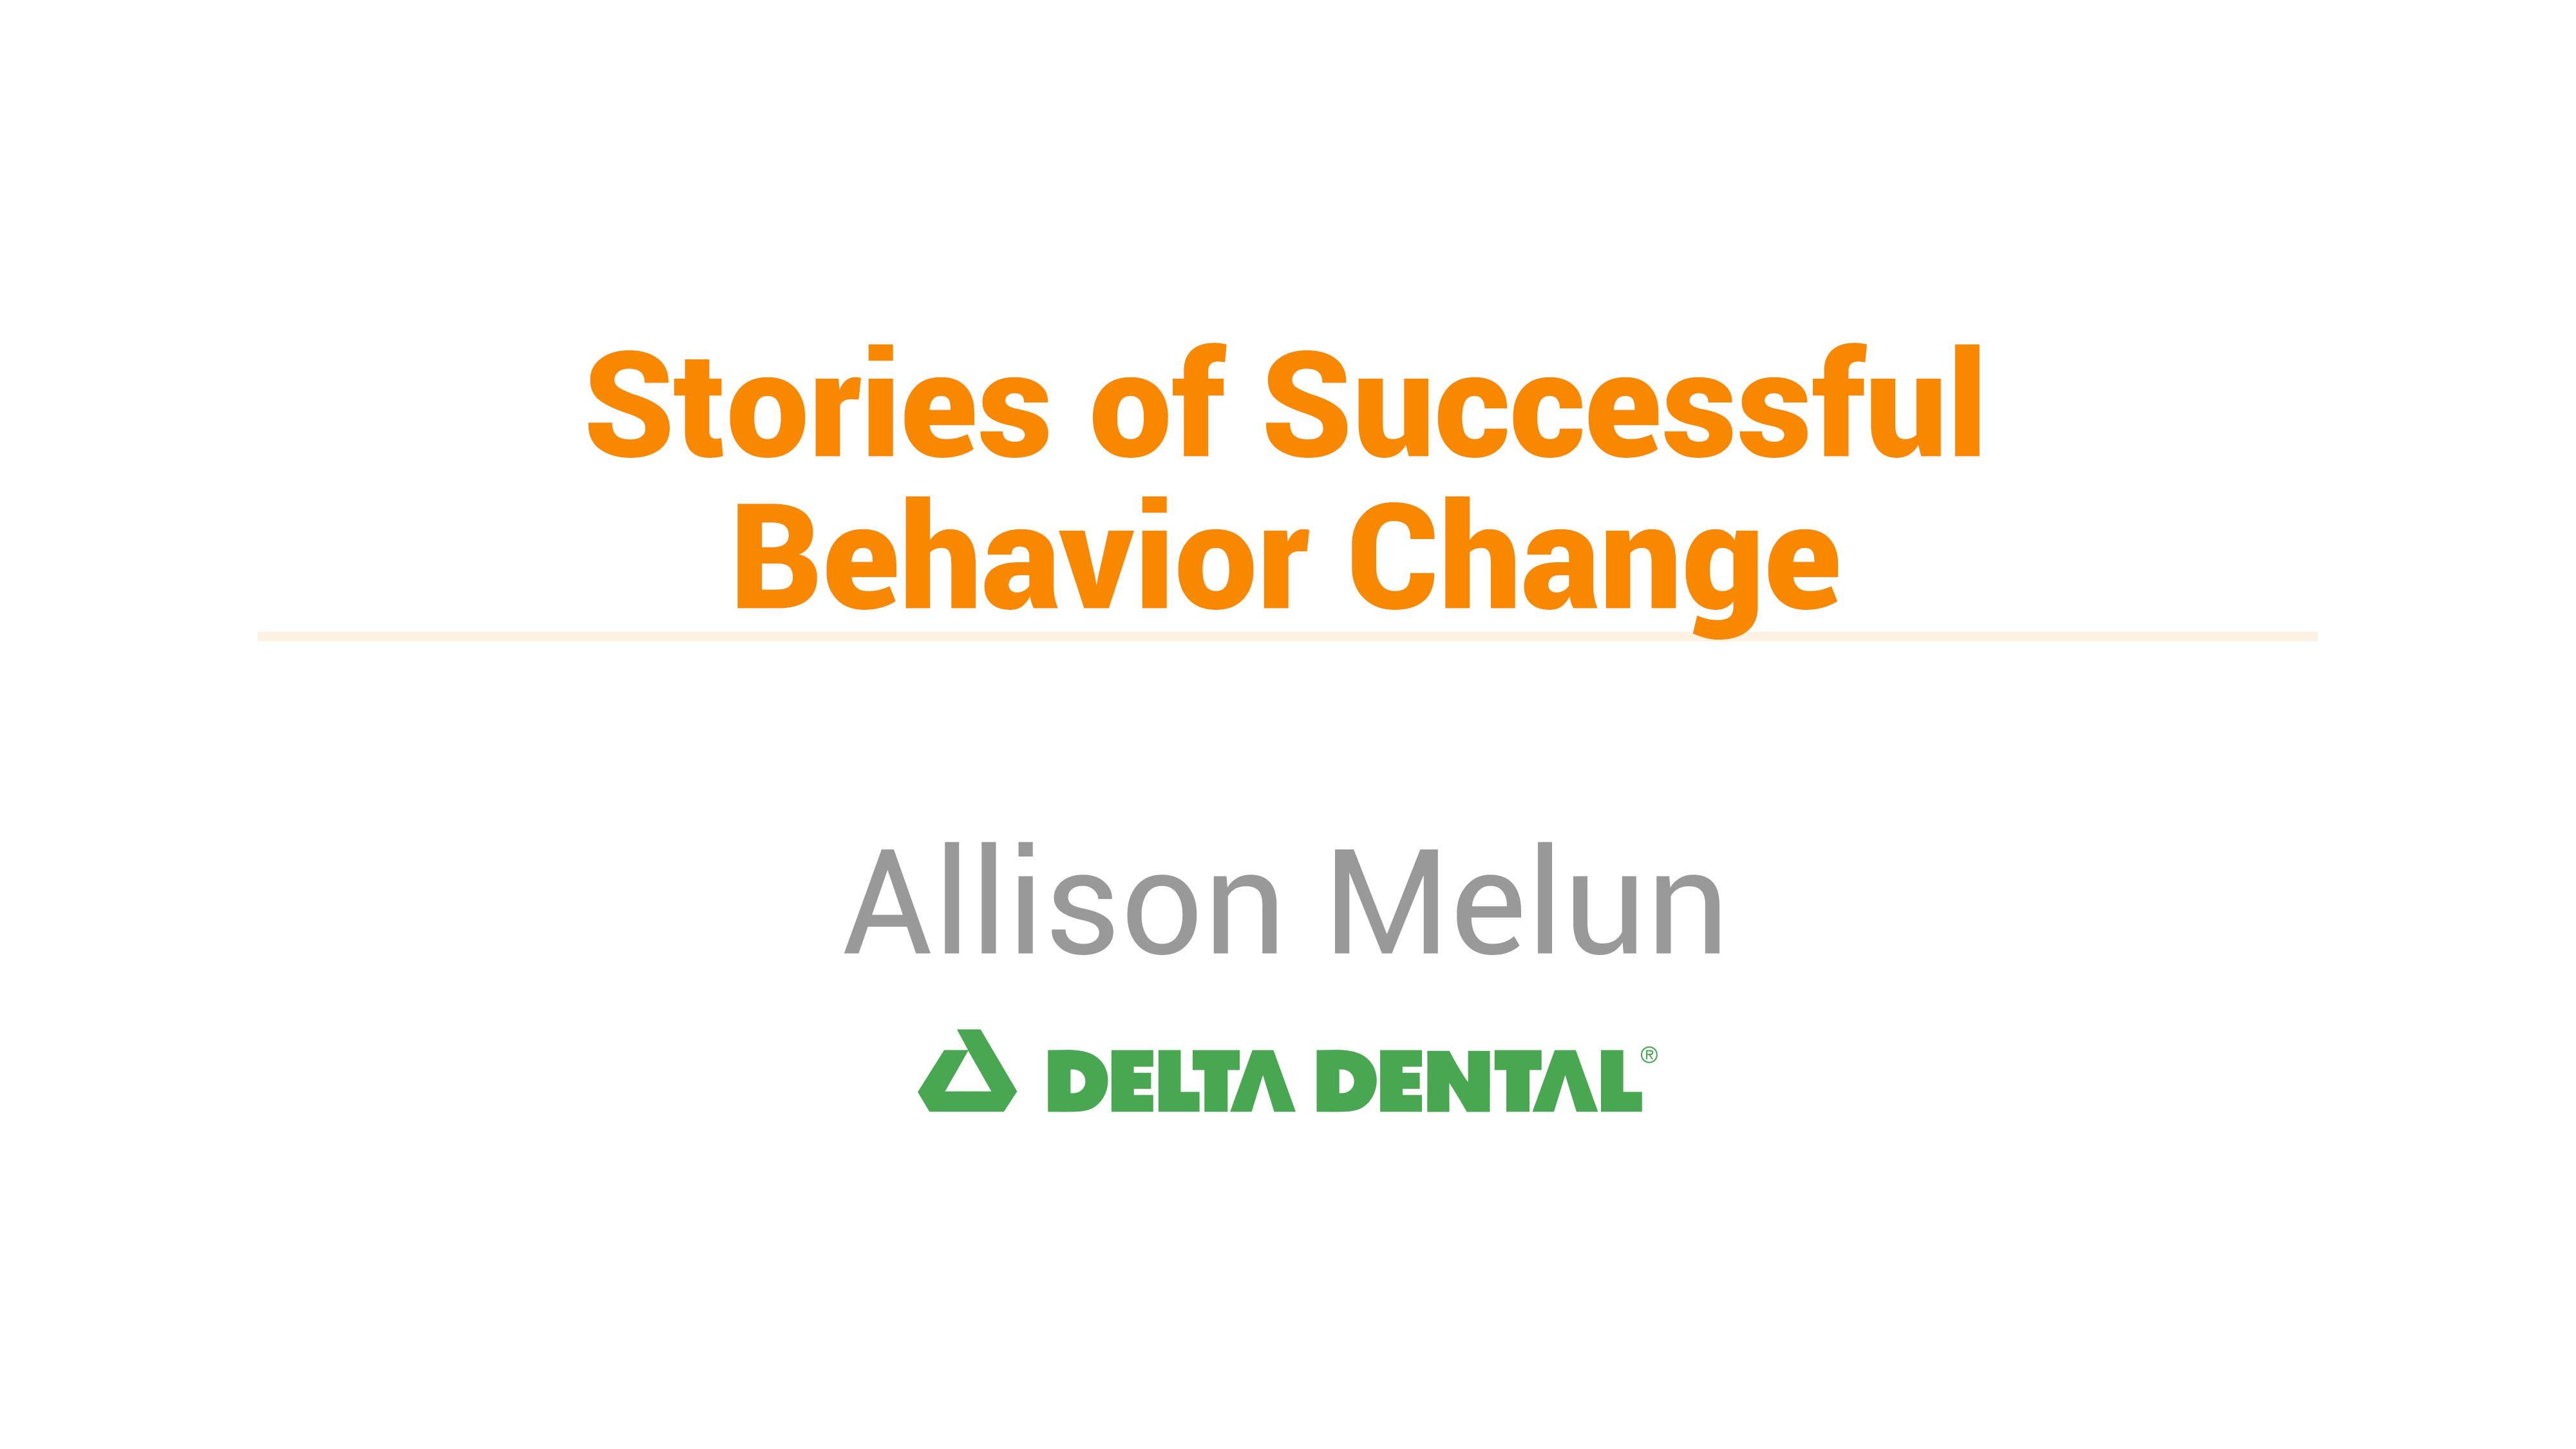 Stories of Successful Behavior Change: Allison Melun, Delta Dental